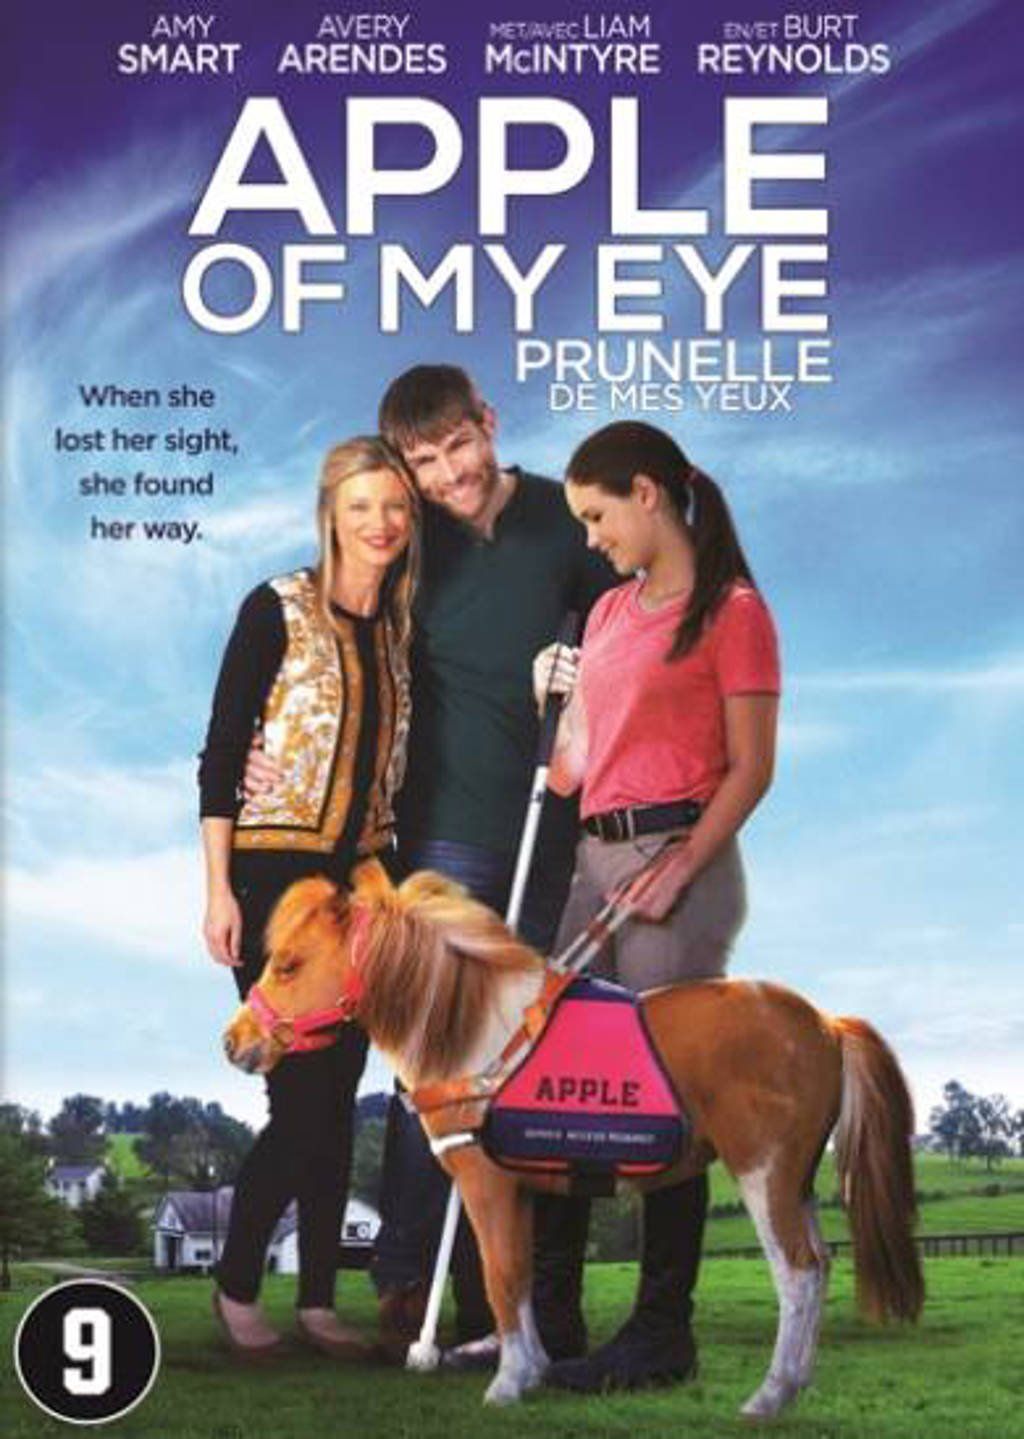 Apple of my eye (DVD)